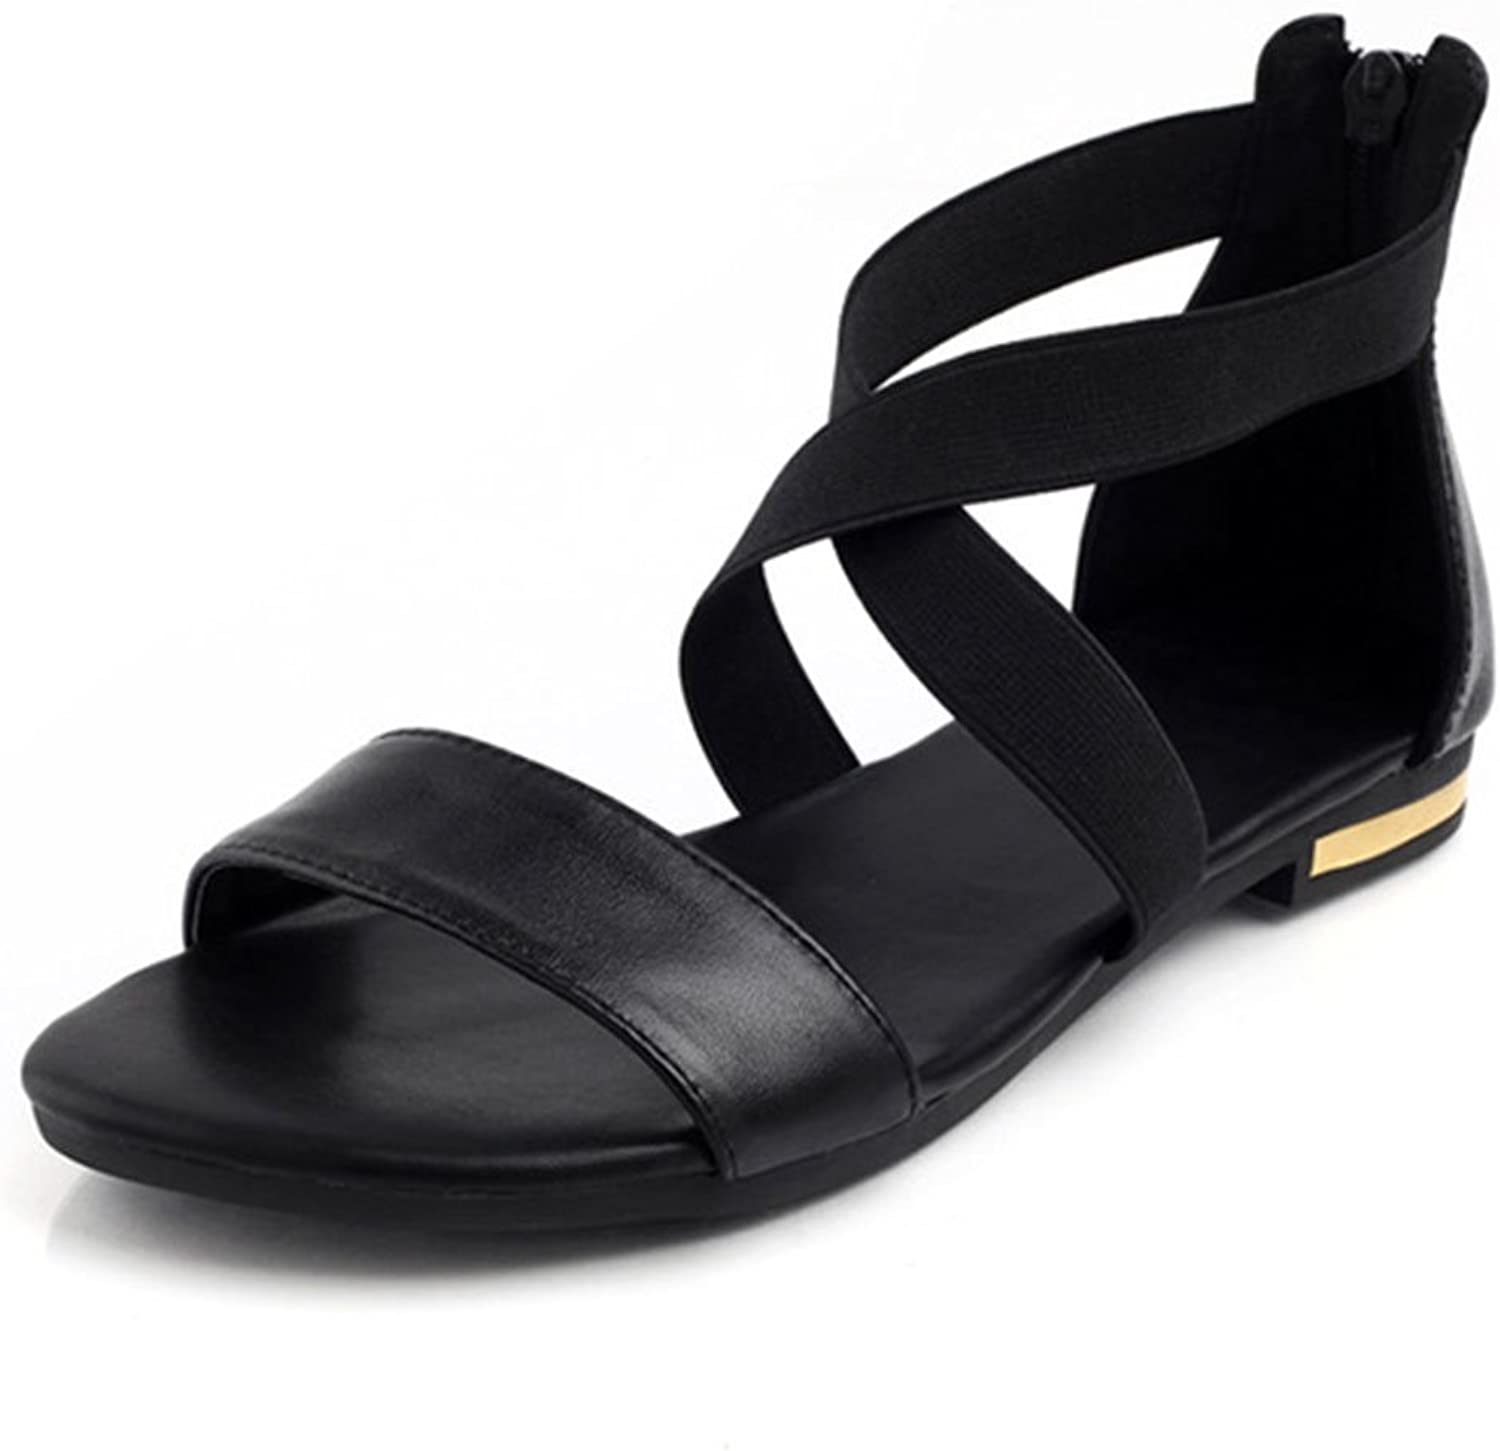 Mageed Solid Black Genuine Leather Low Heels Sandals Women Comfortable Casual shoes